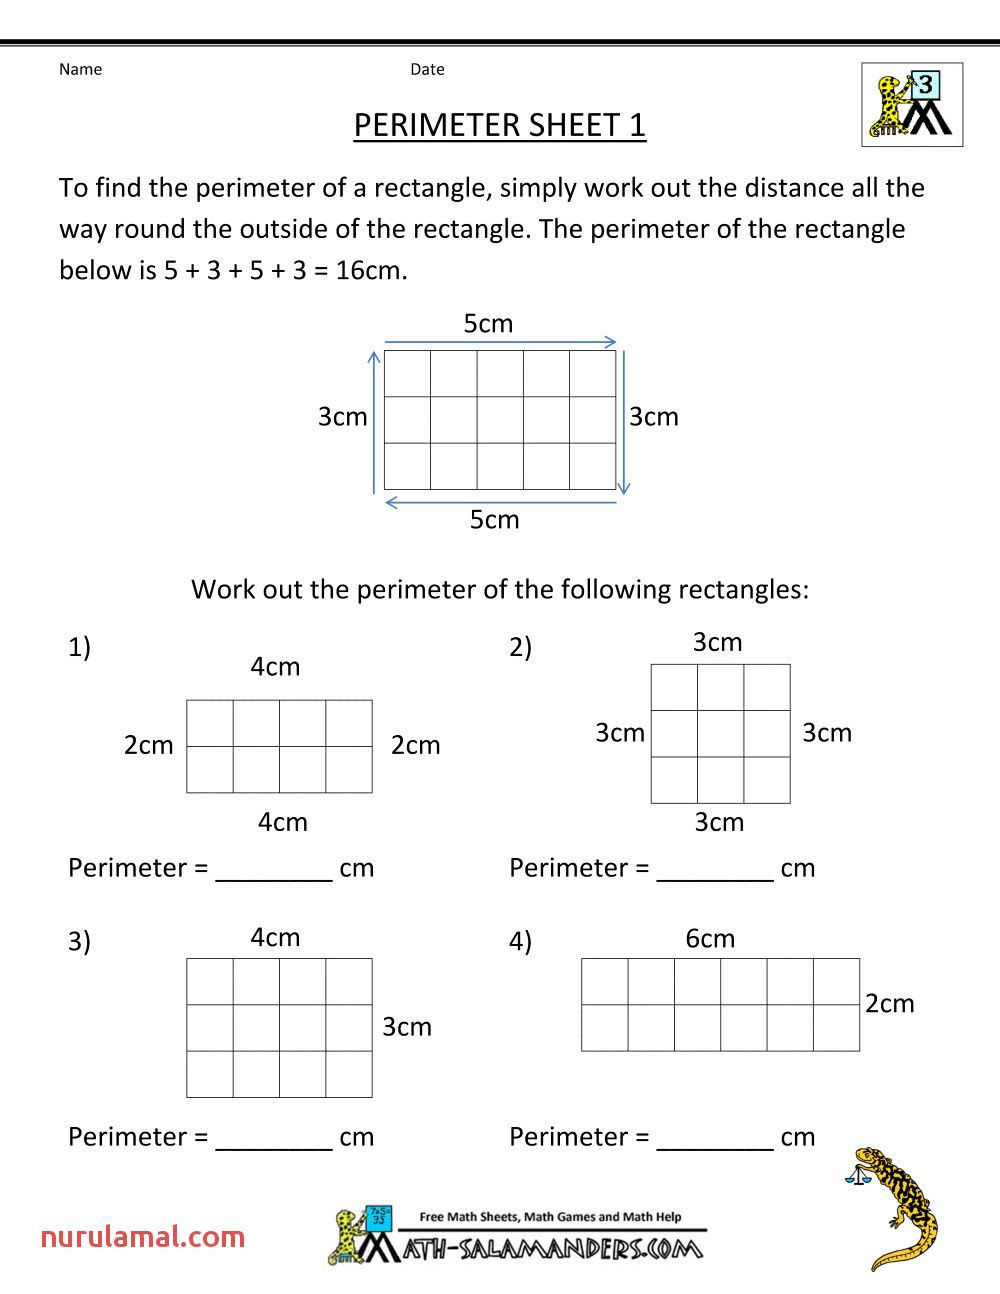 Perimeter Worksheets 3rd Grade Free 3rd Grade Math Worksheets Perimeter 1 In 2020